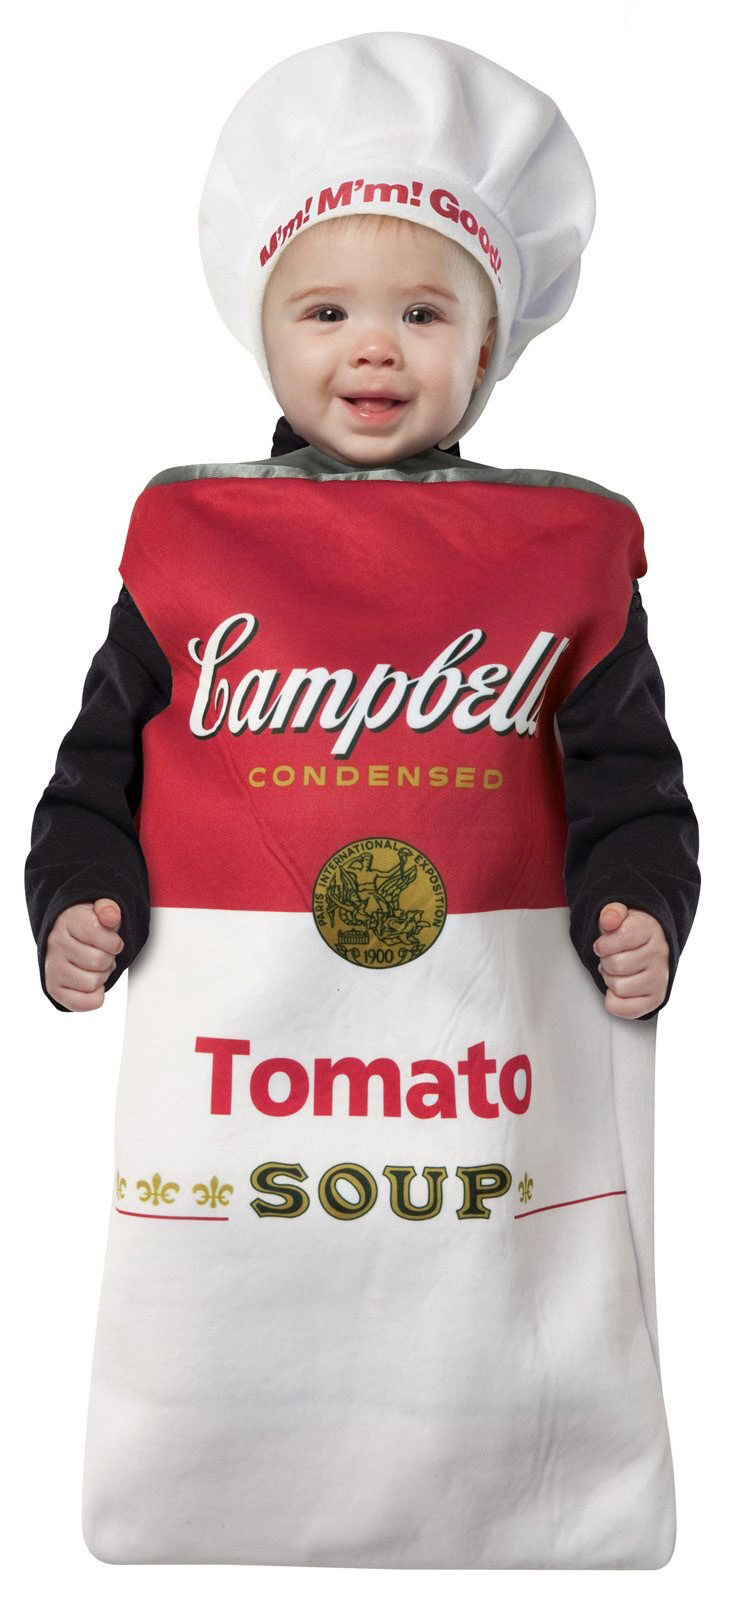 C&bellu0027s Tomato Soup Can Baby Costume  sc 1 st  Mr. Costumes & Campbellu0027s Tomato Soup Can Baby Costume - Mr. Costumes